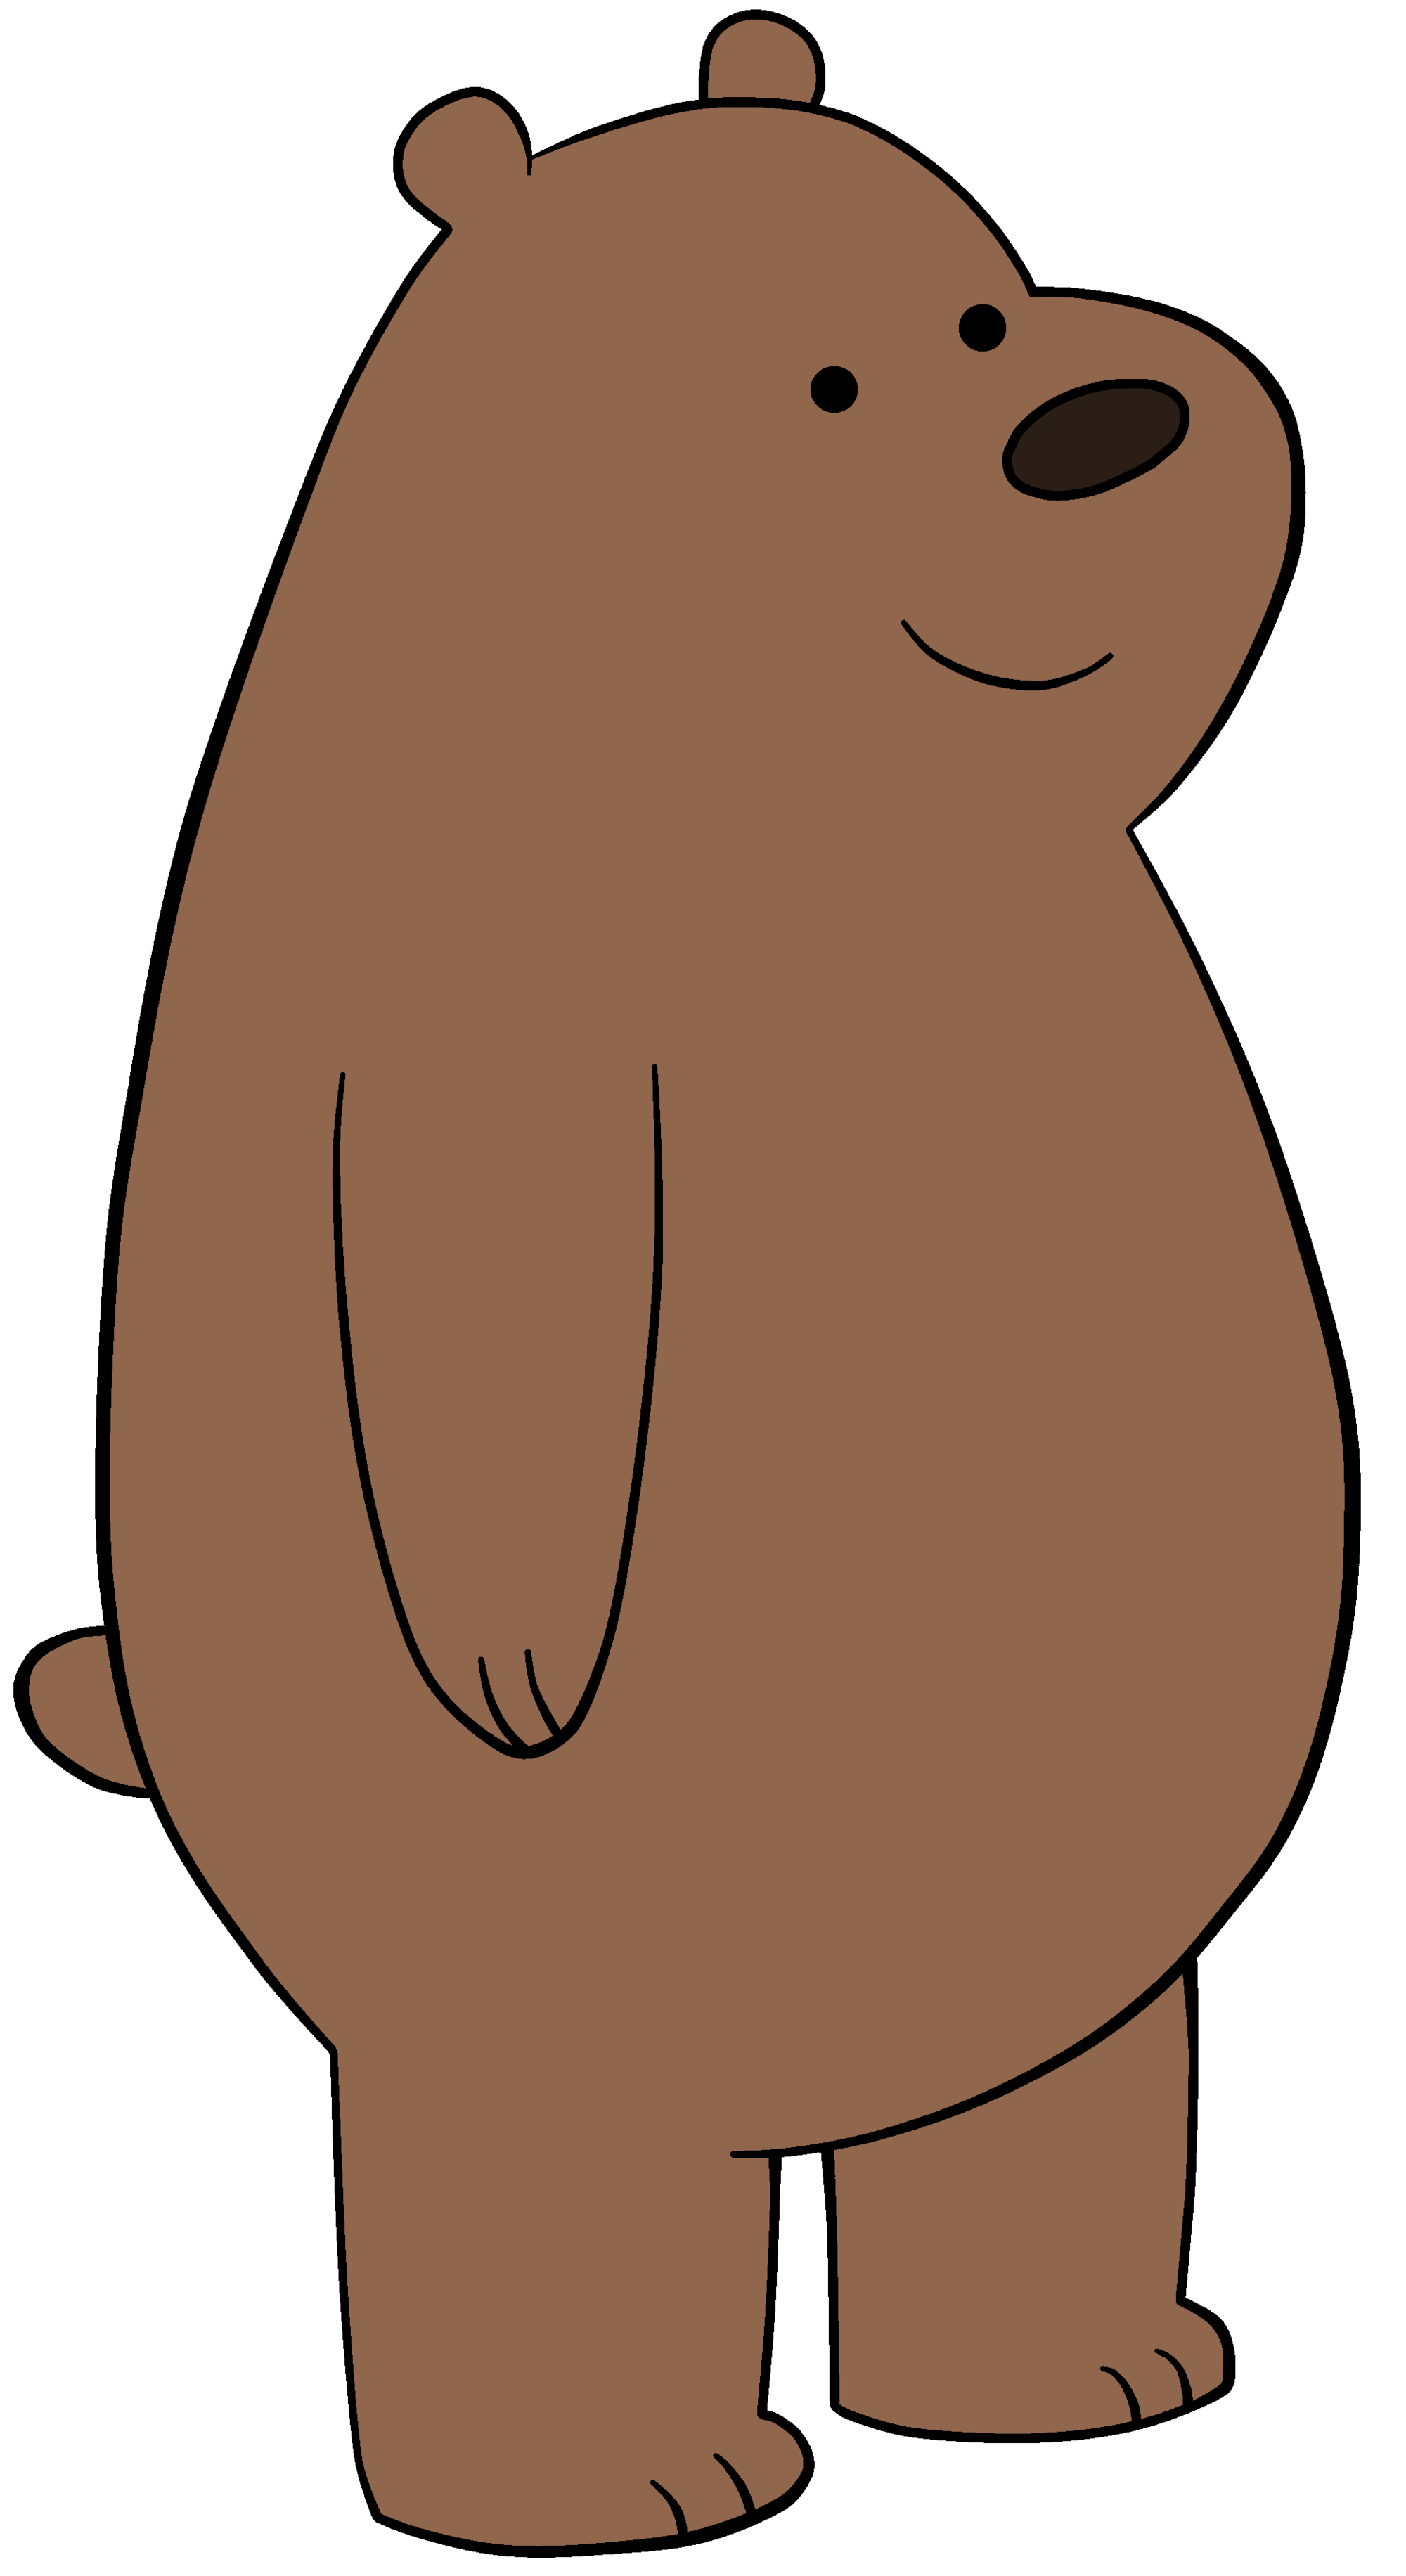 Groundhog clipart hibernating. Grizzly bear designs we